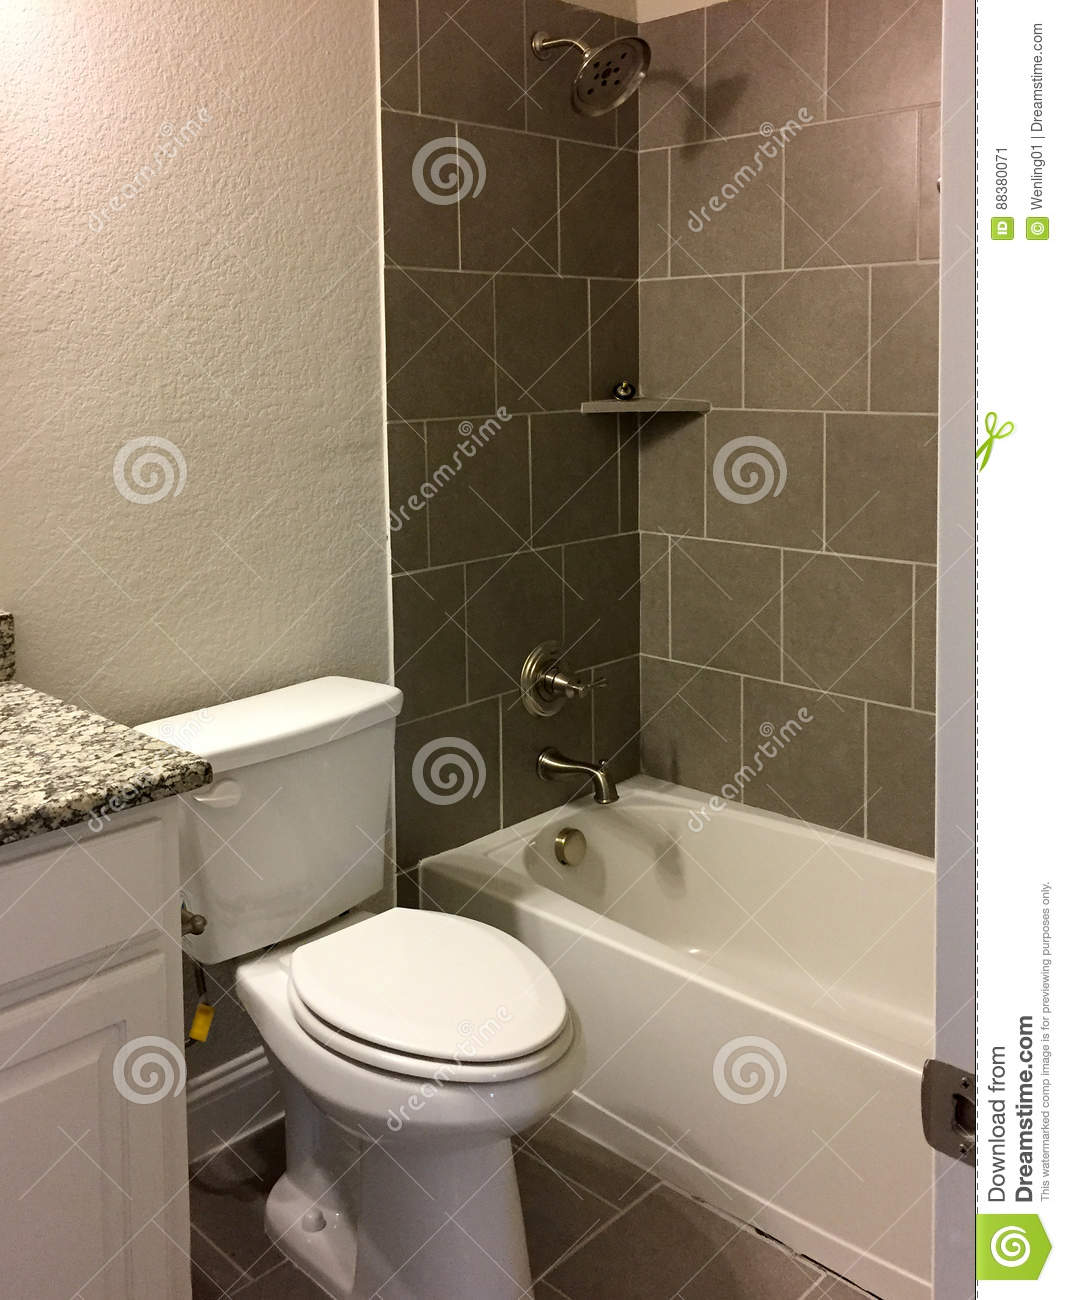 Nice Bathtub And Toilet In A New Bathroom Stock Image - Image of ...